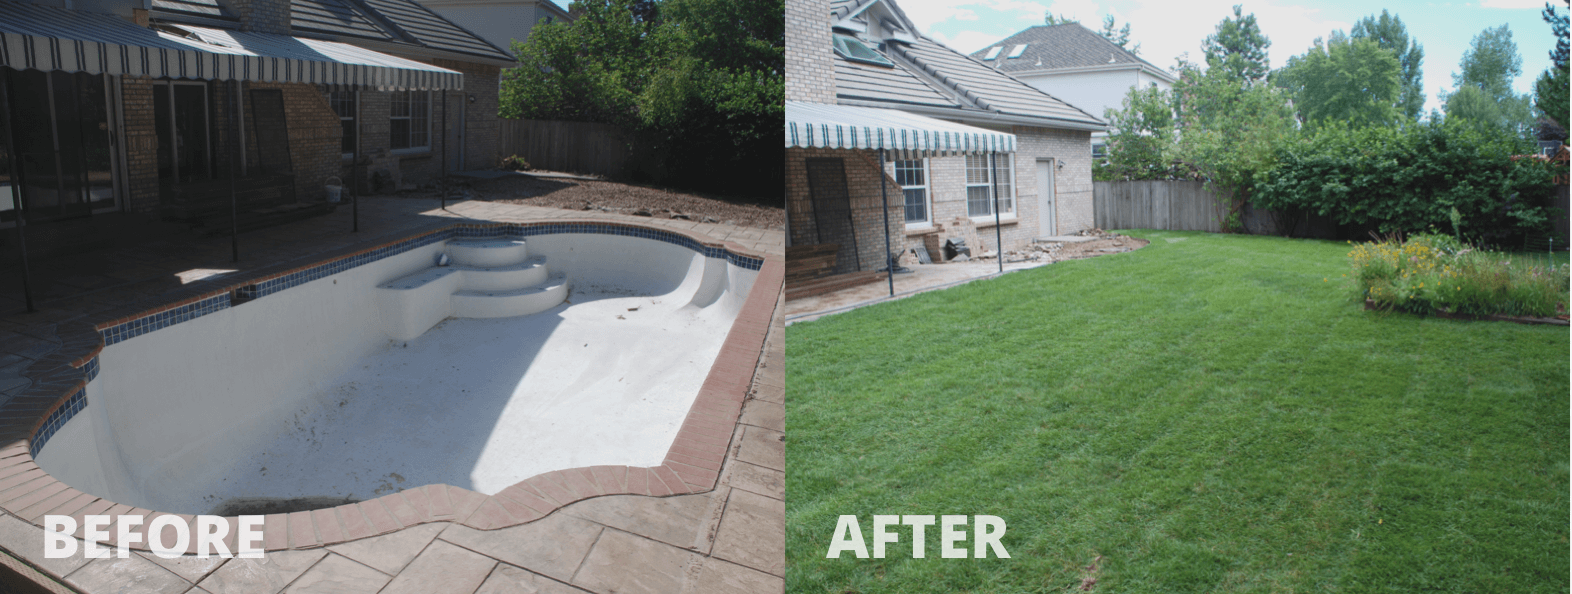 Mack Land LLC - Littleton, CO – Concrete Pool removal